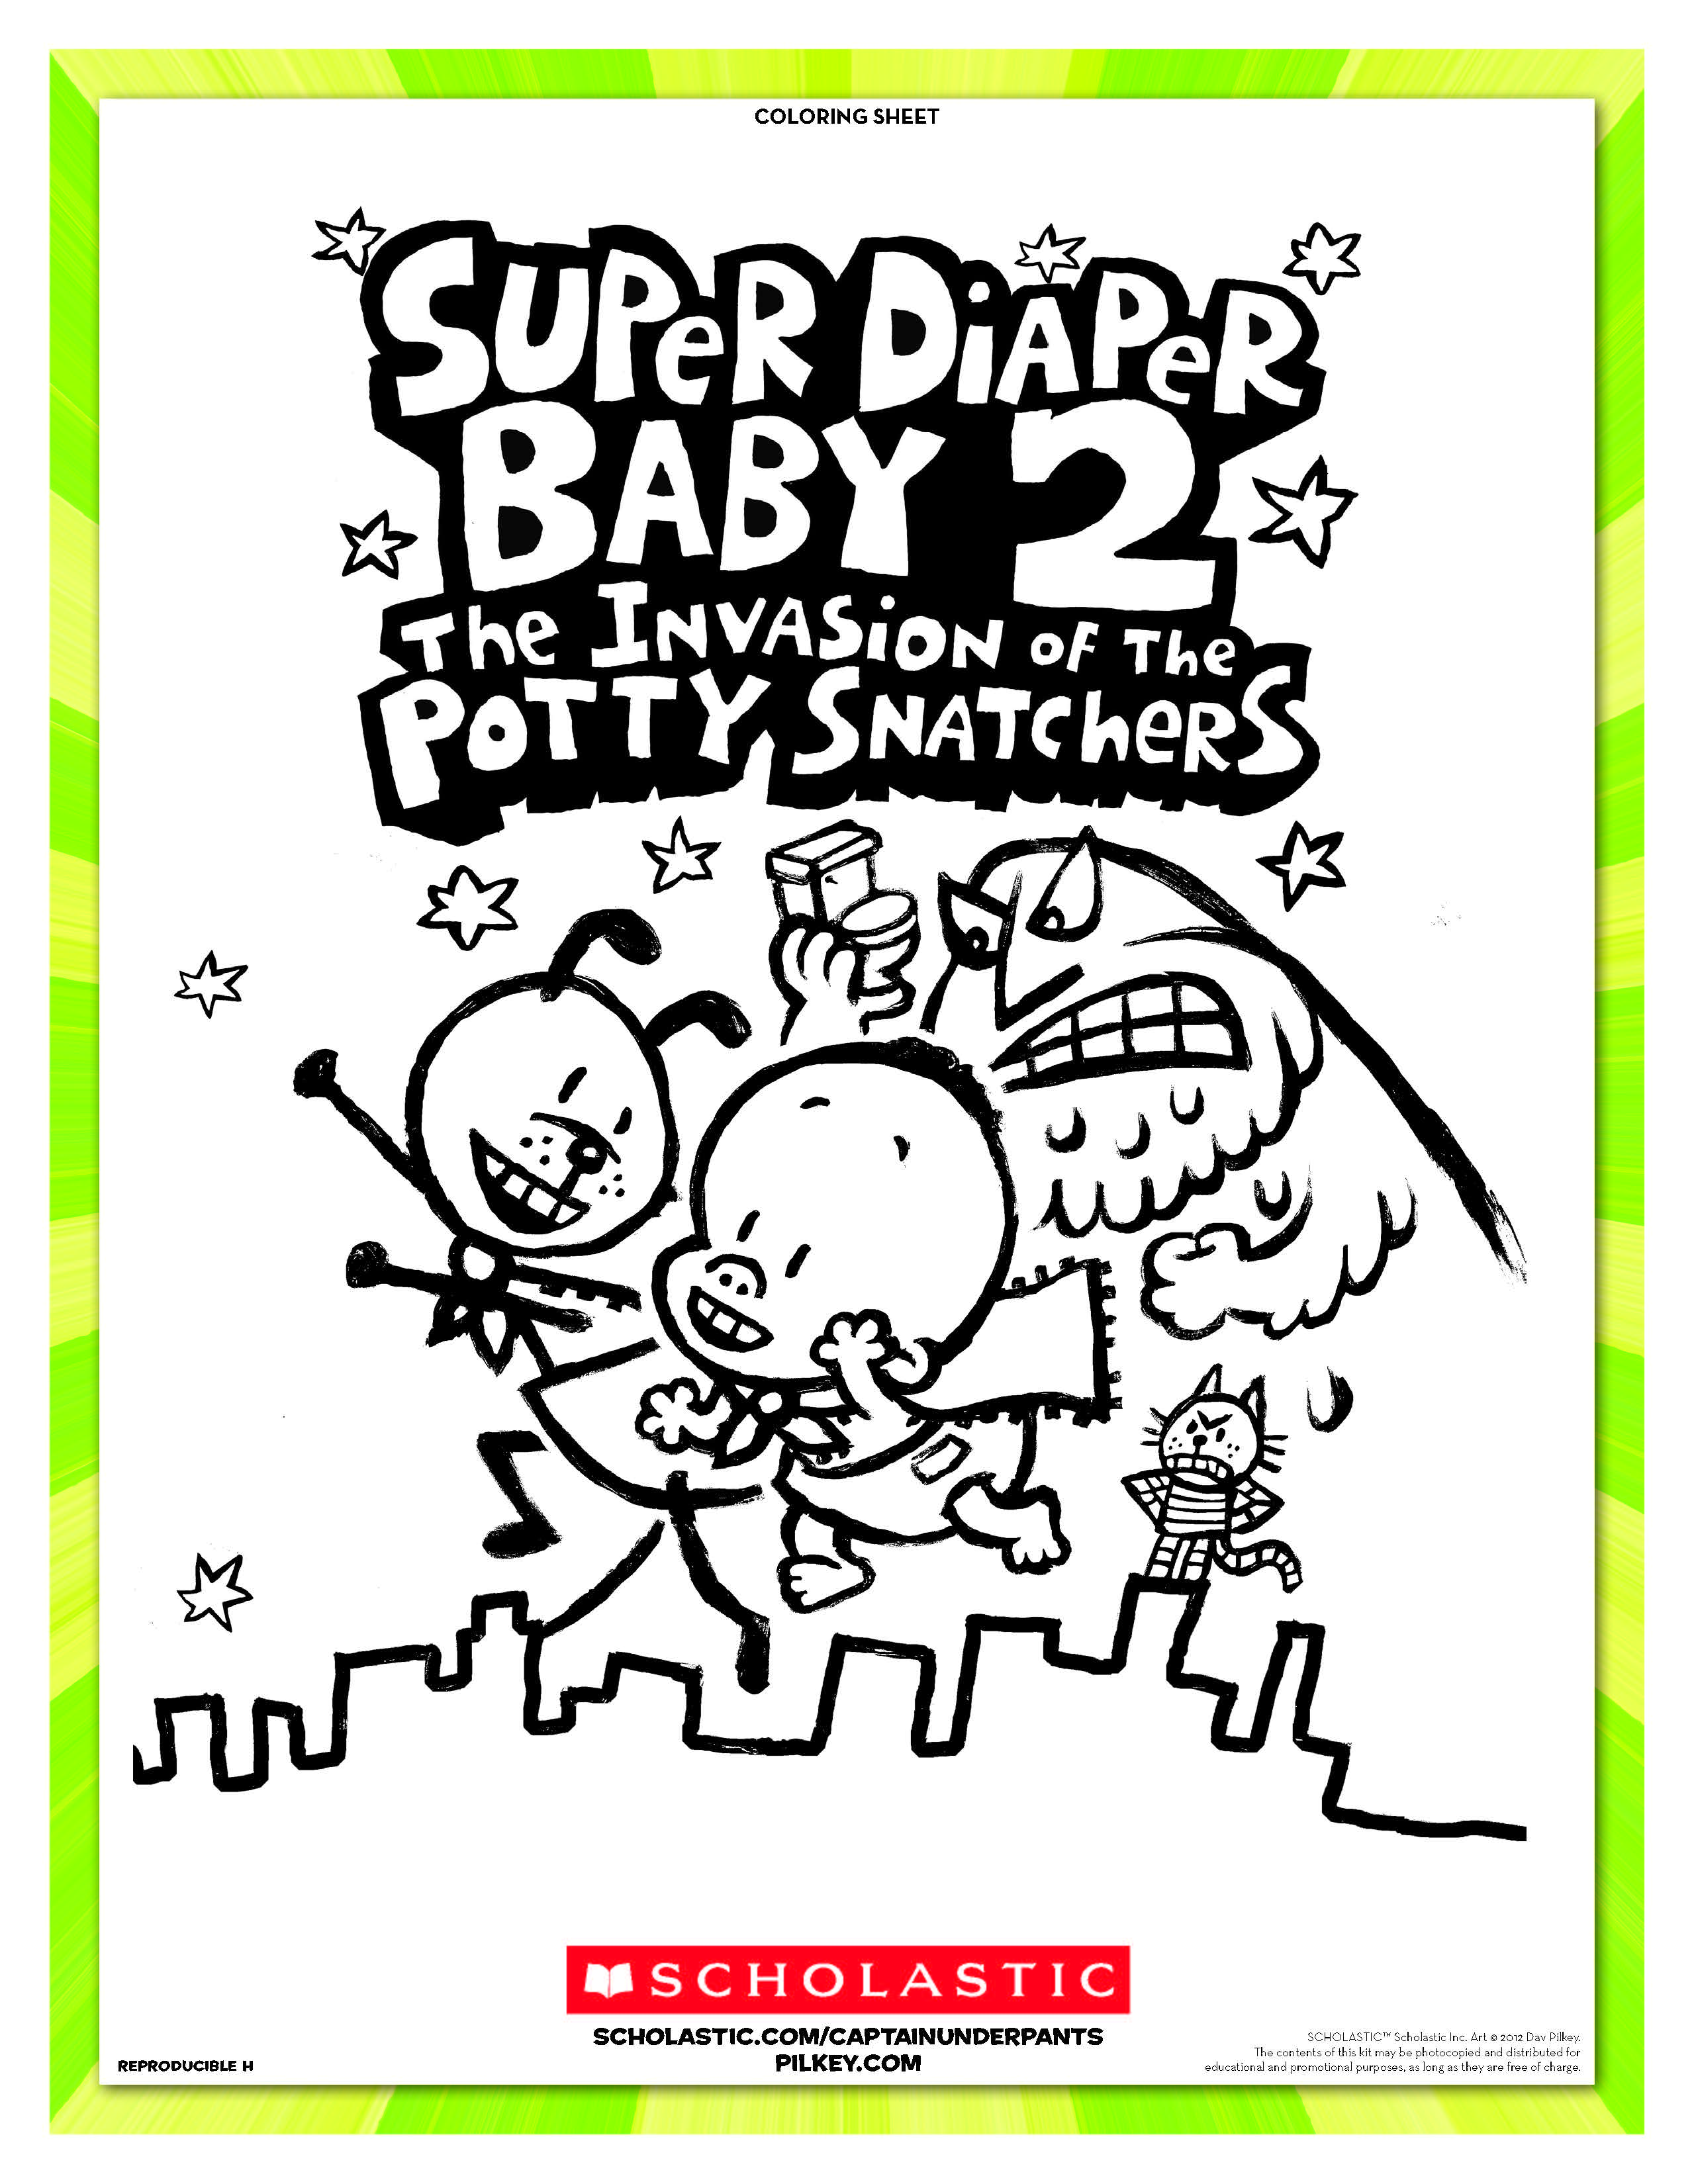 Super Diaper Baby 2: The Invasion of the Potty Snatchers coloring sheet